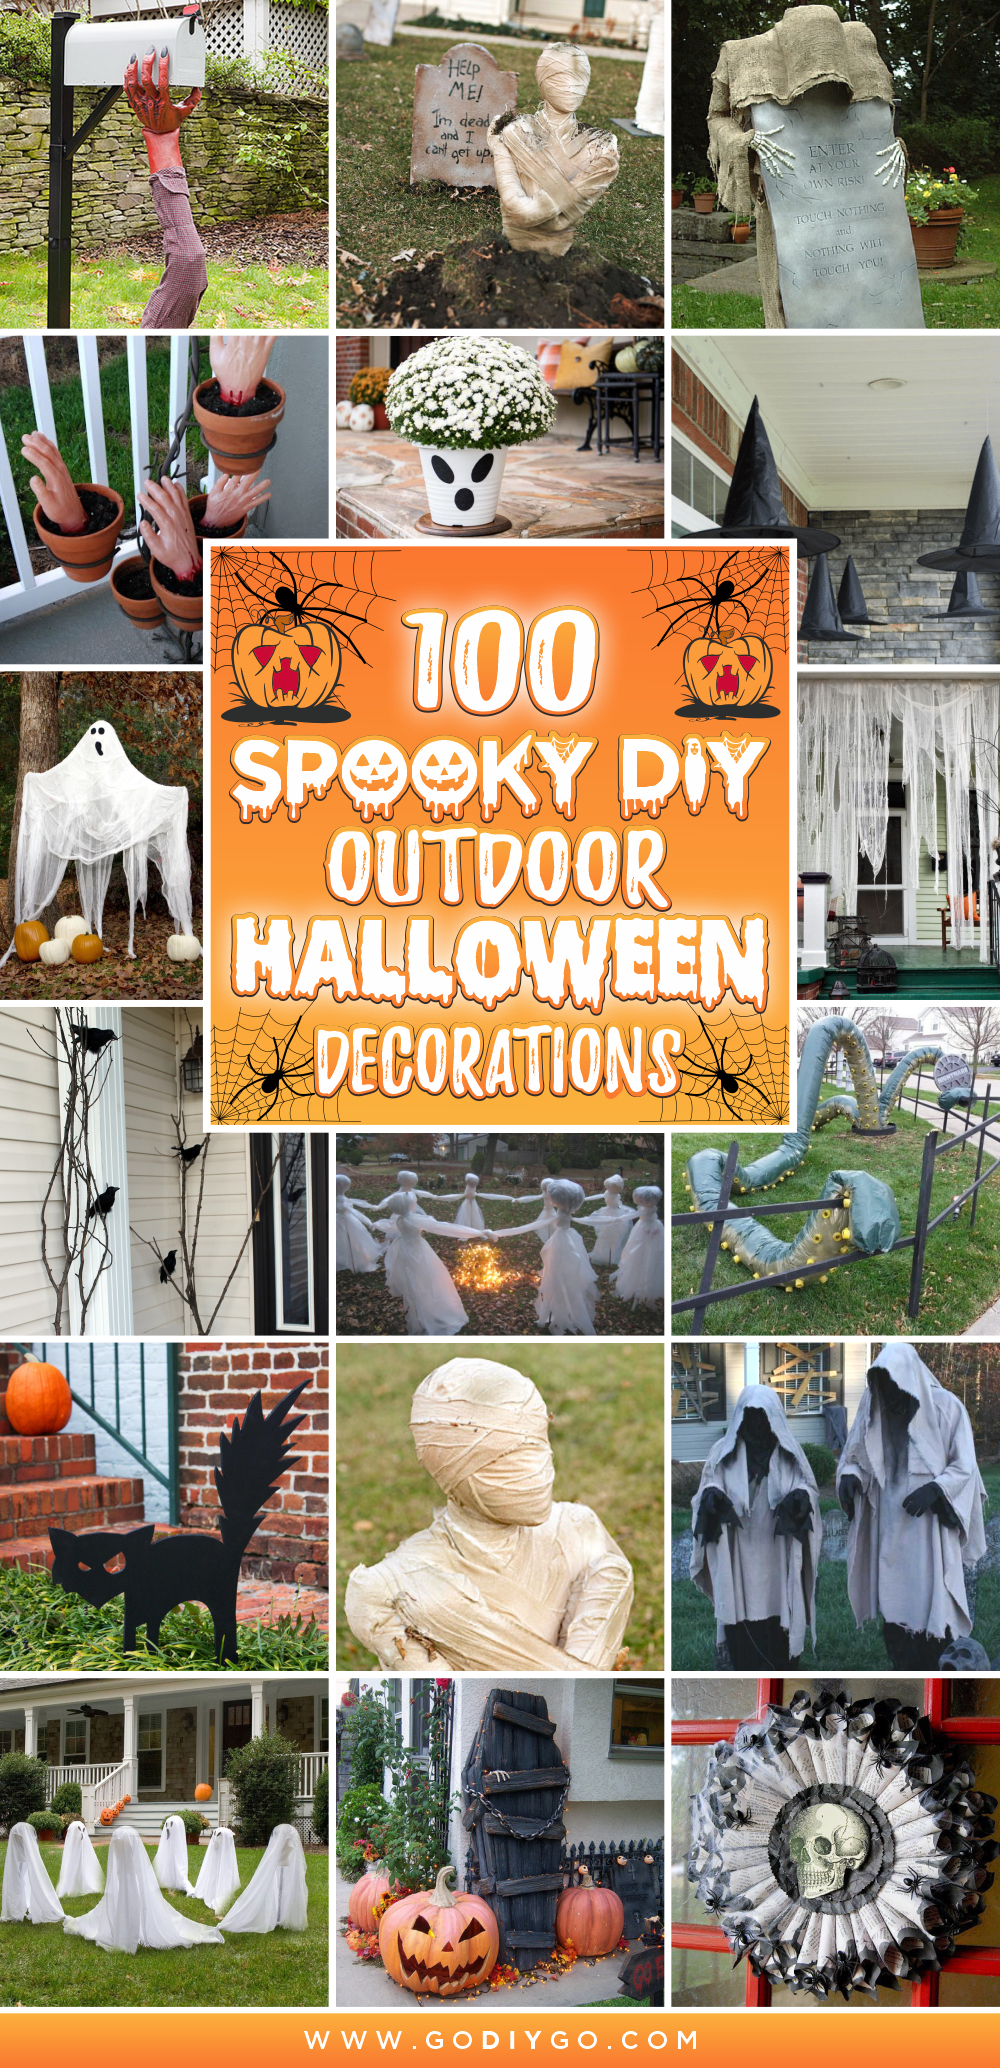 100 Spooky Diy Outdoor Halloween Decorations Godiygo Com